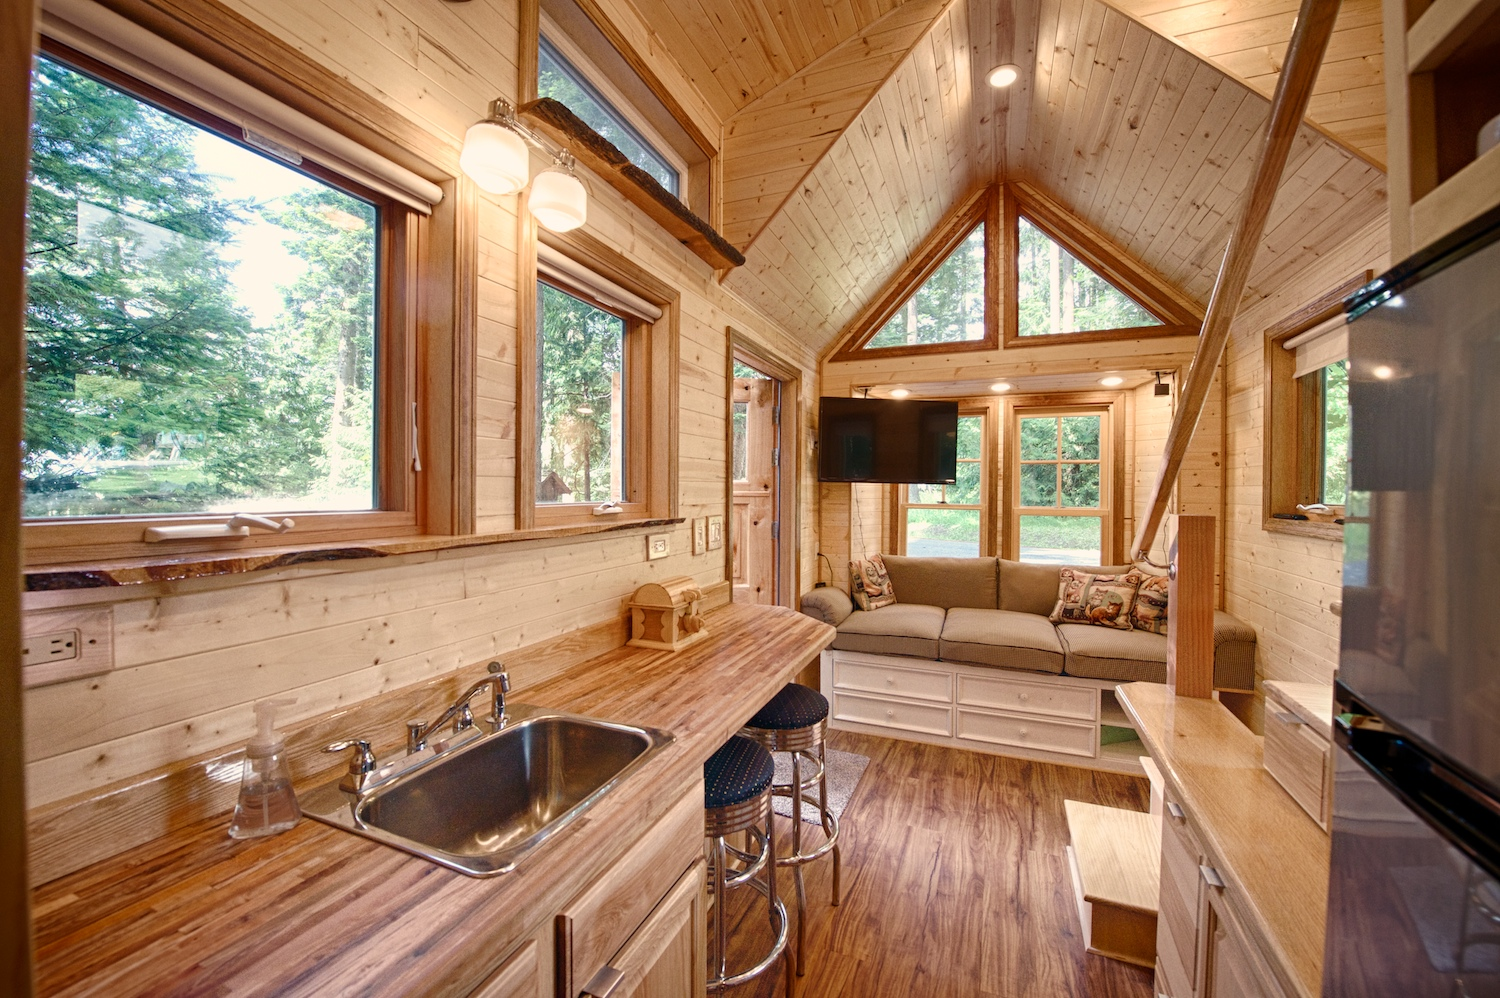 Tiny Home 5 Stone And Wood Shop Articles